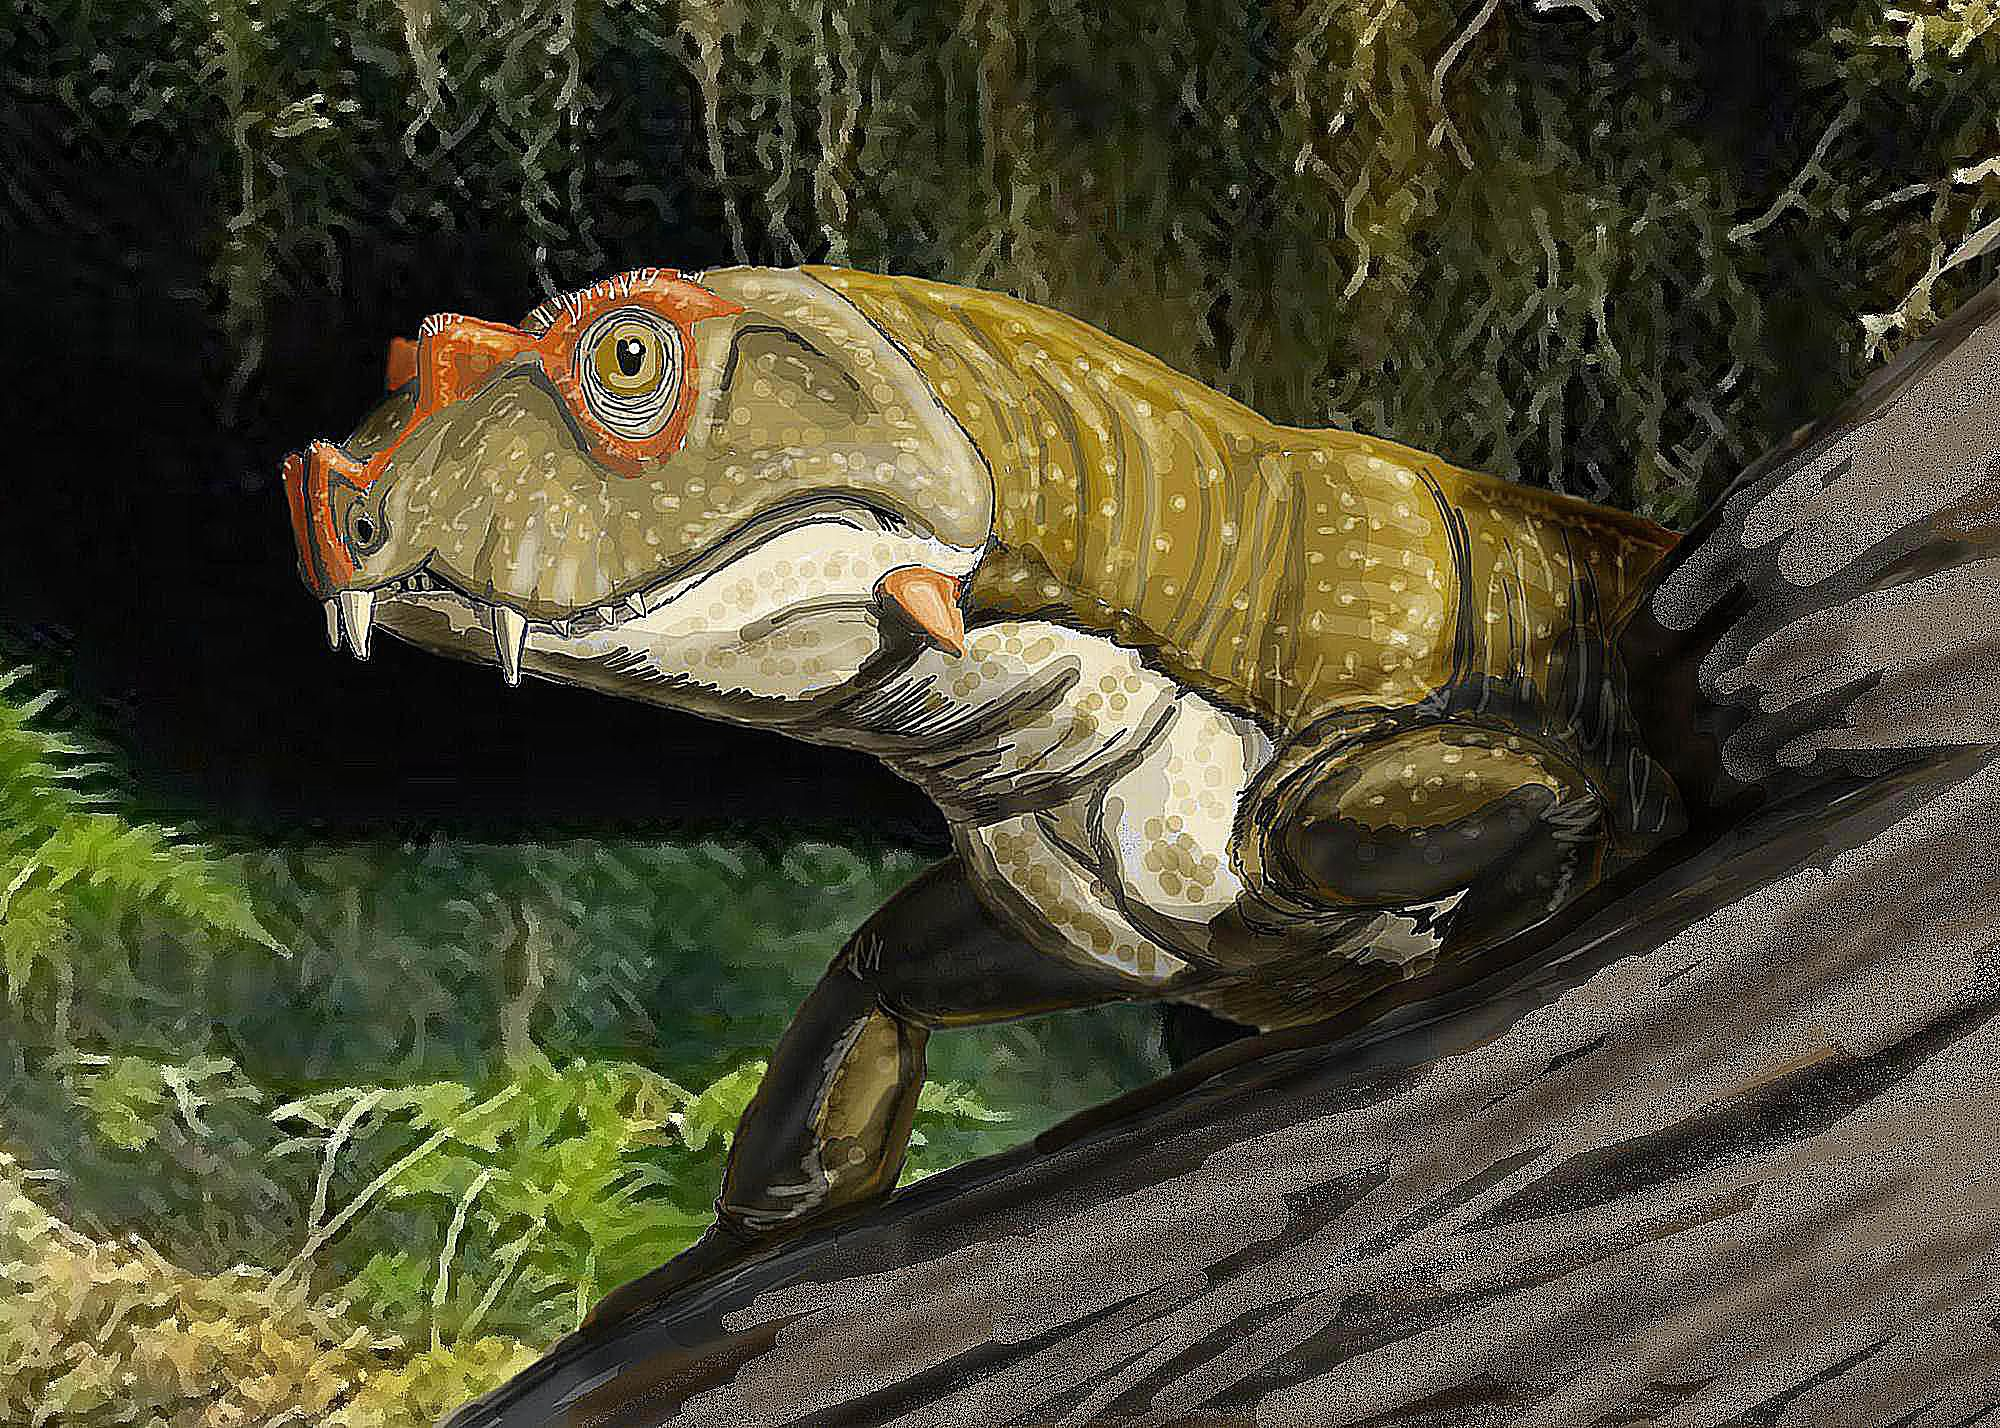 The First Reptiles